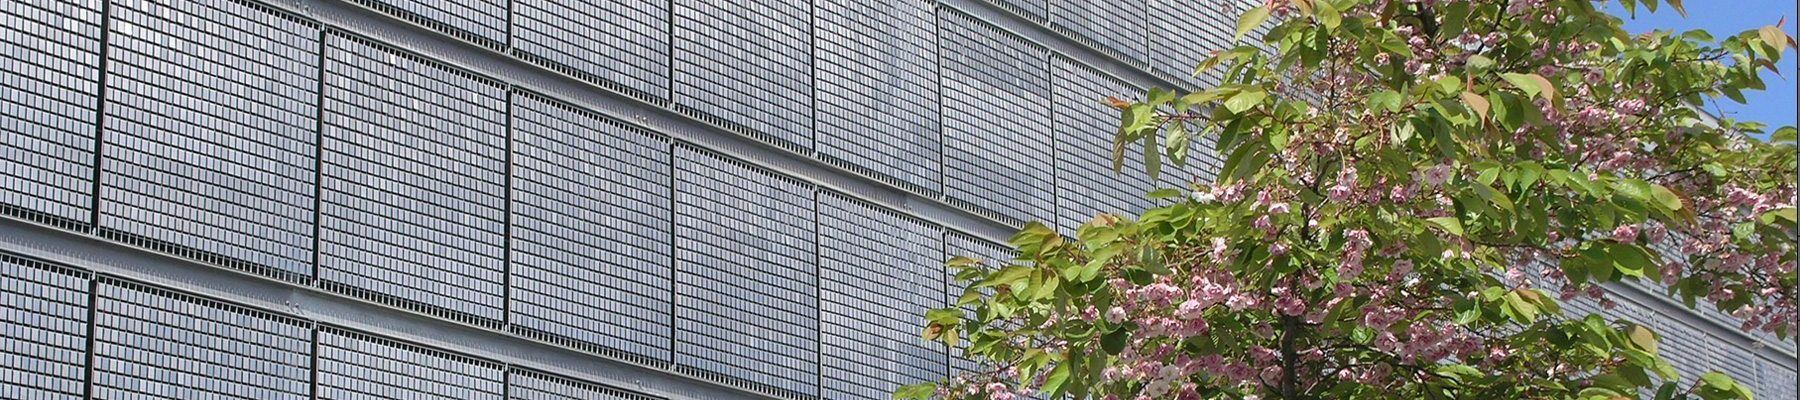 Banner-STEREO-KINETIC-wall-cladding-Olympia-MSCP